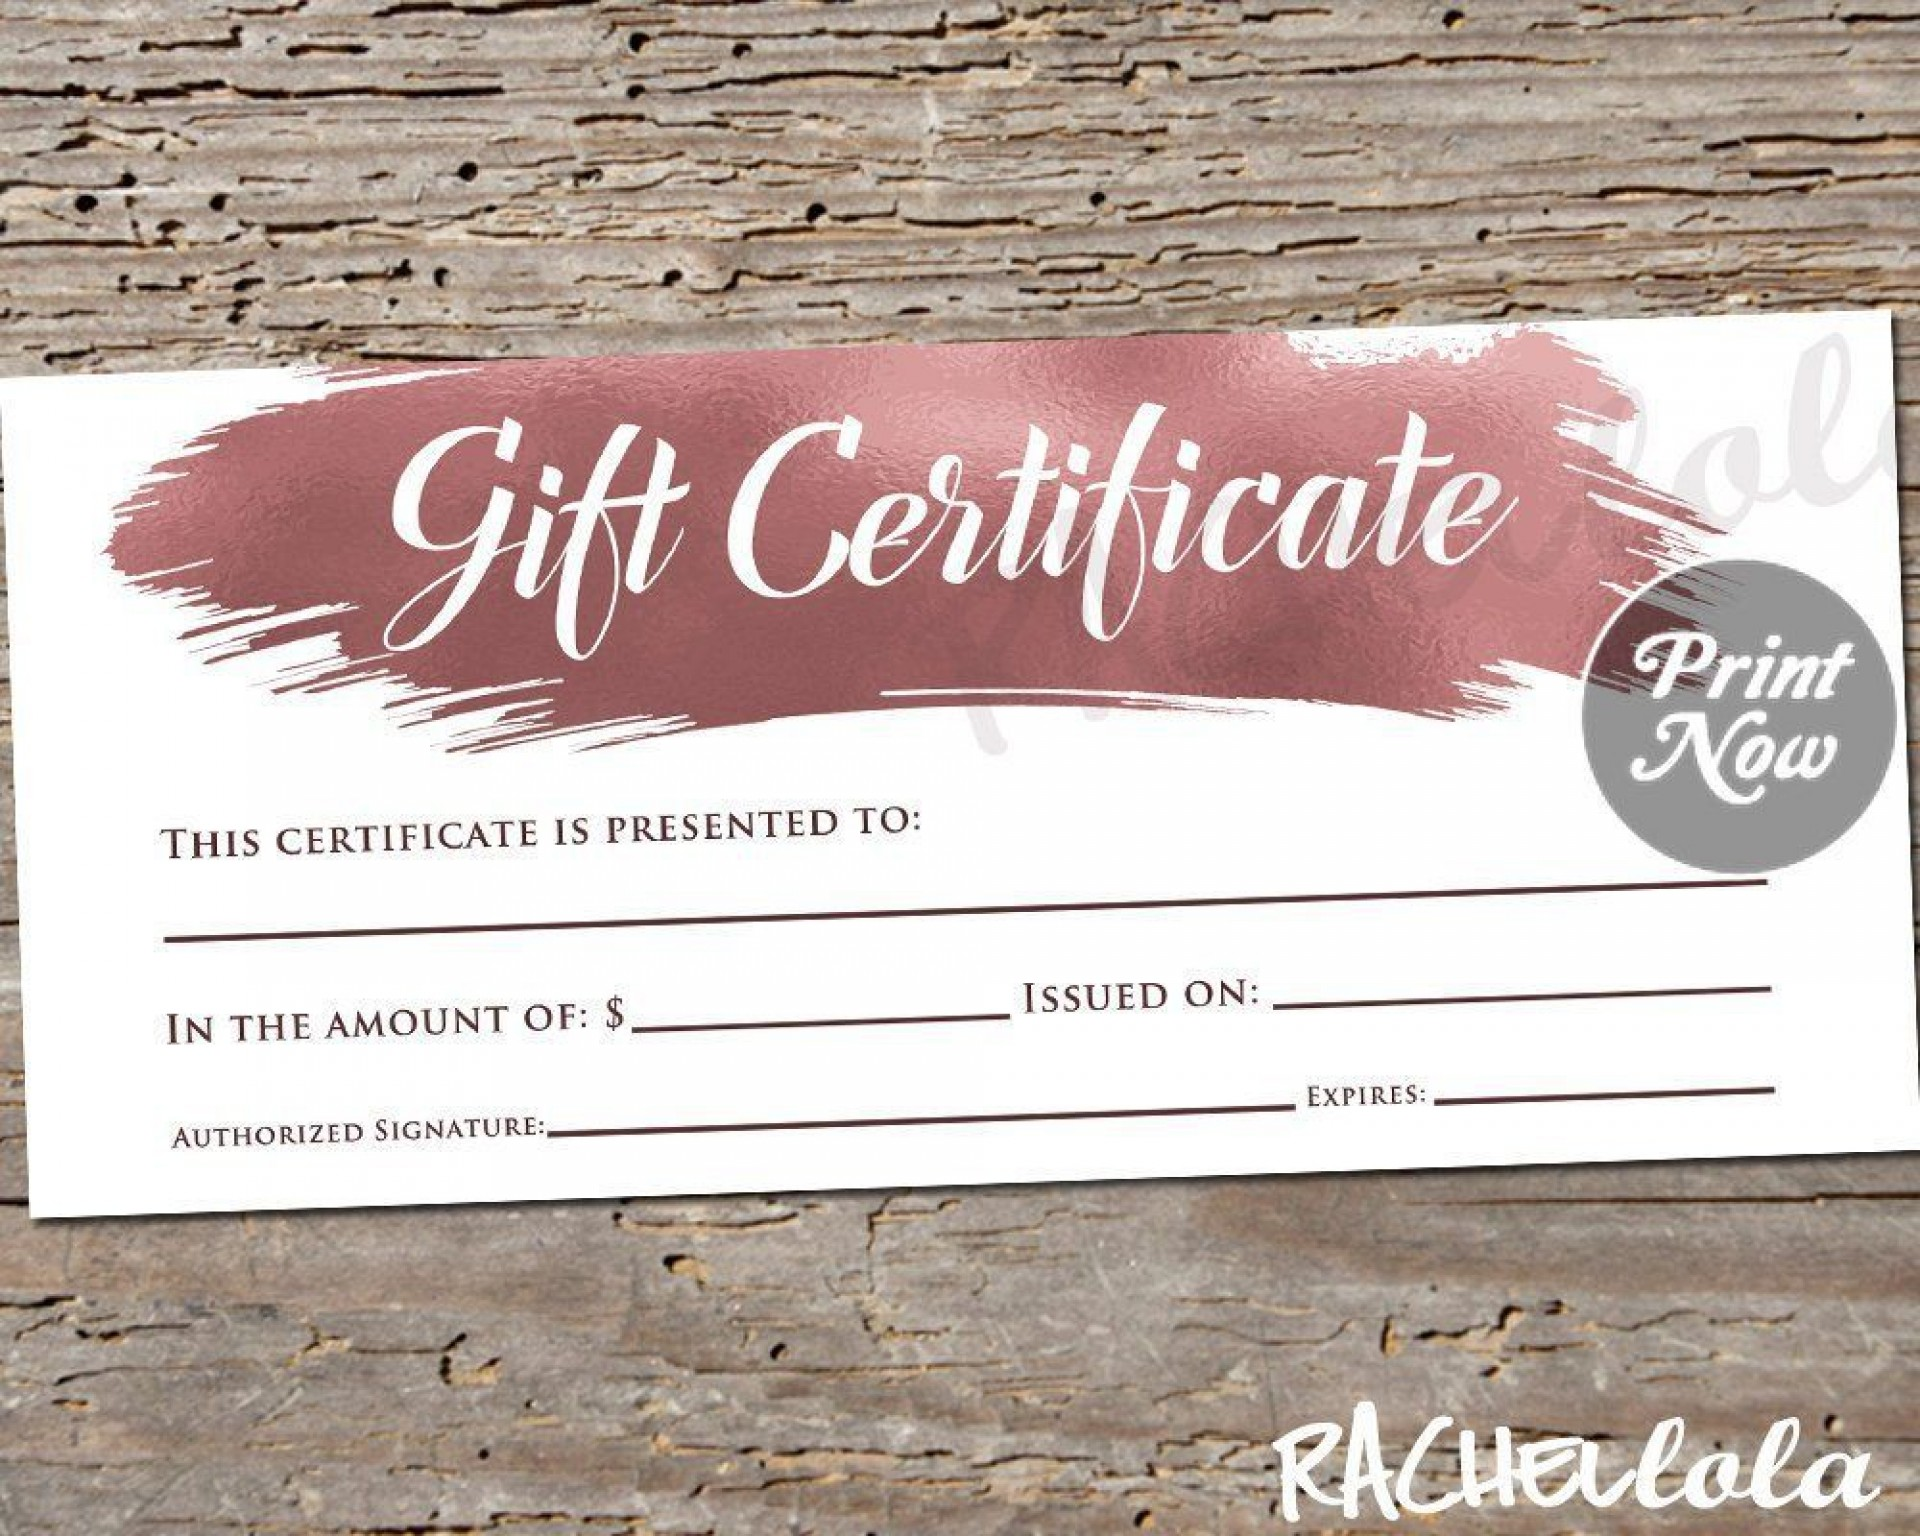 003 Unique Restaurant Gift Certificate Template Photo  Templates Card Word Voucher Free1920